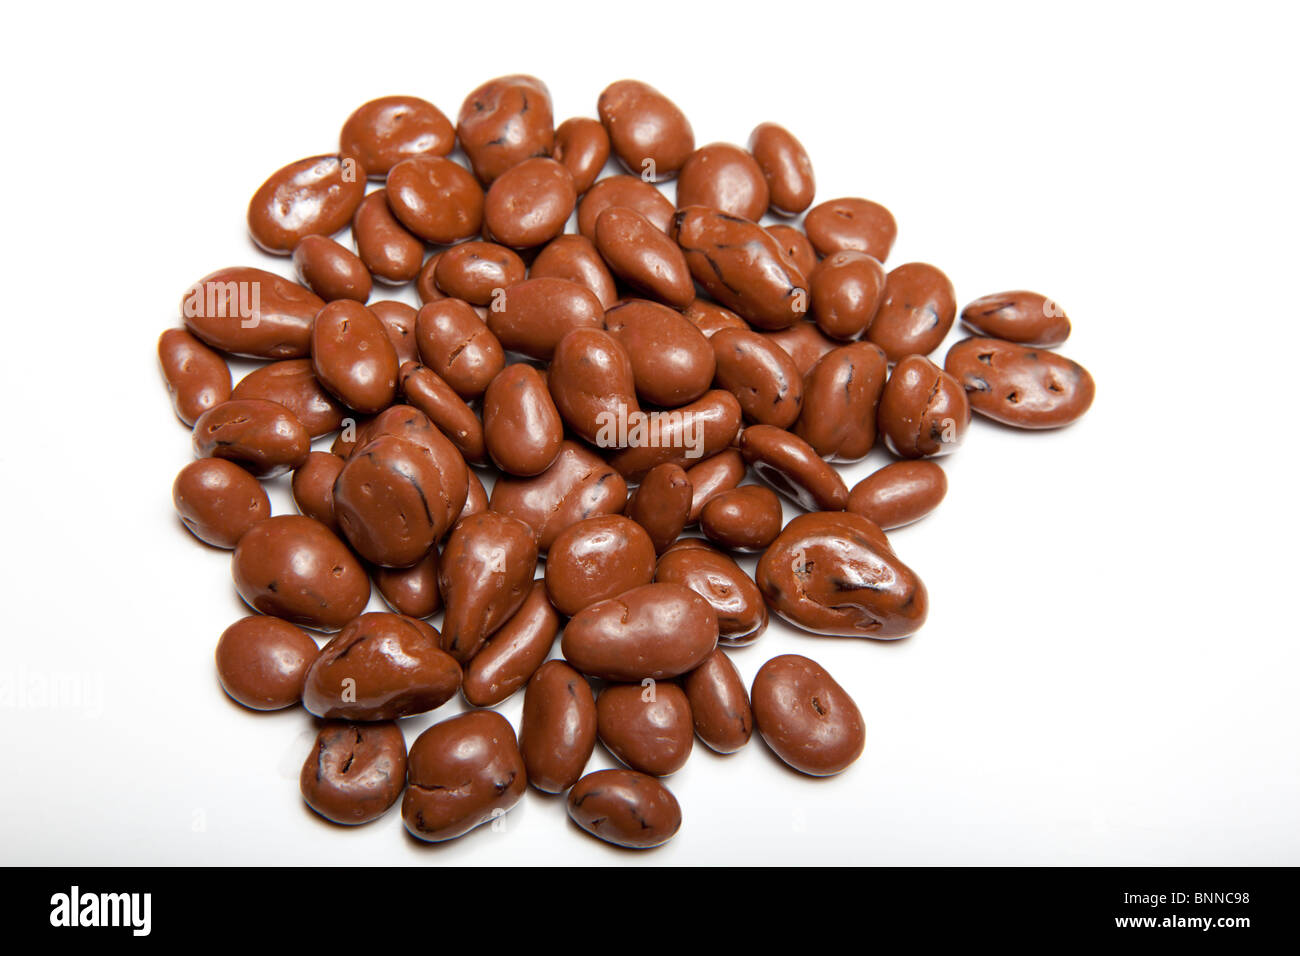 Chocolate covered raisins on a white background Stock Photo ...